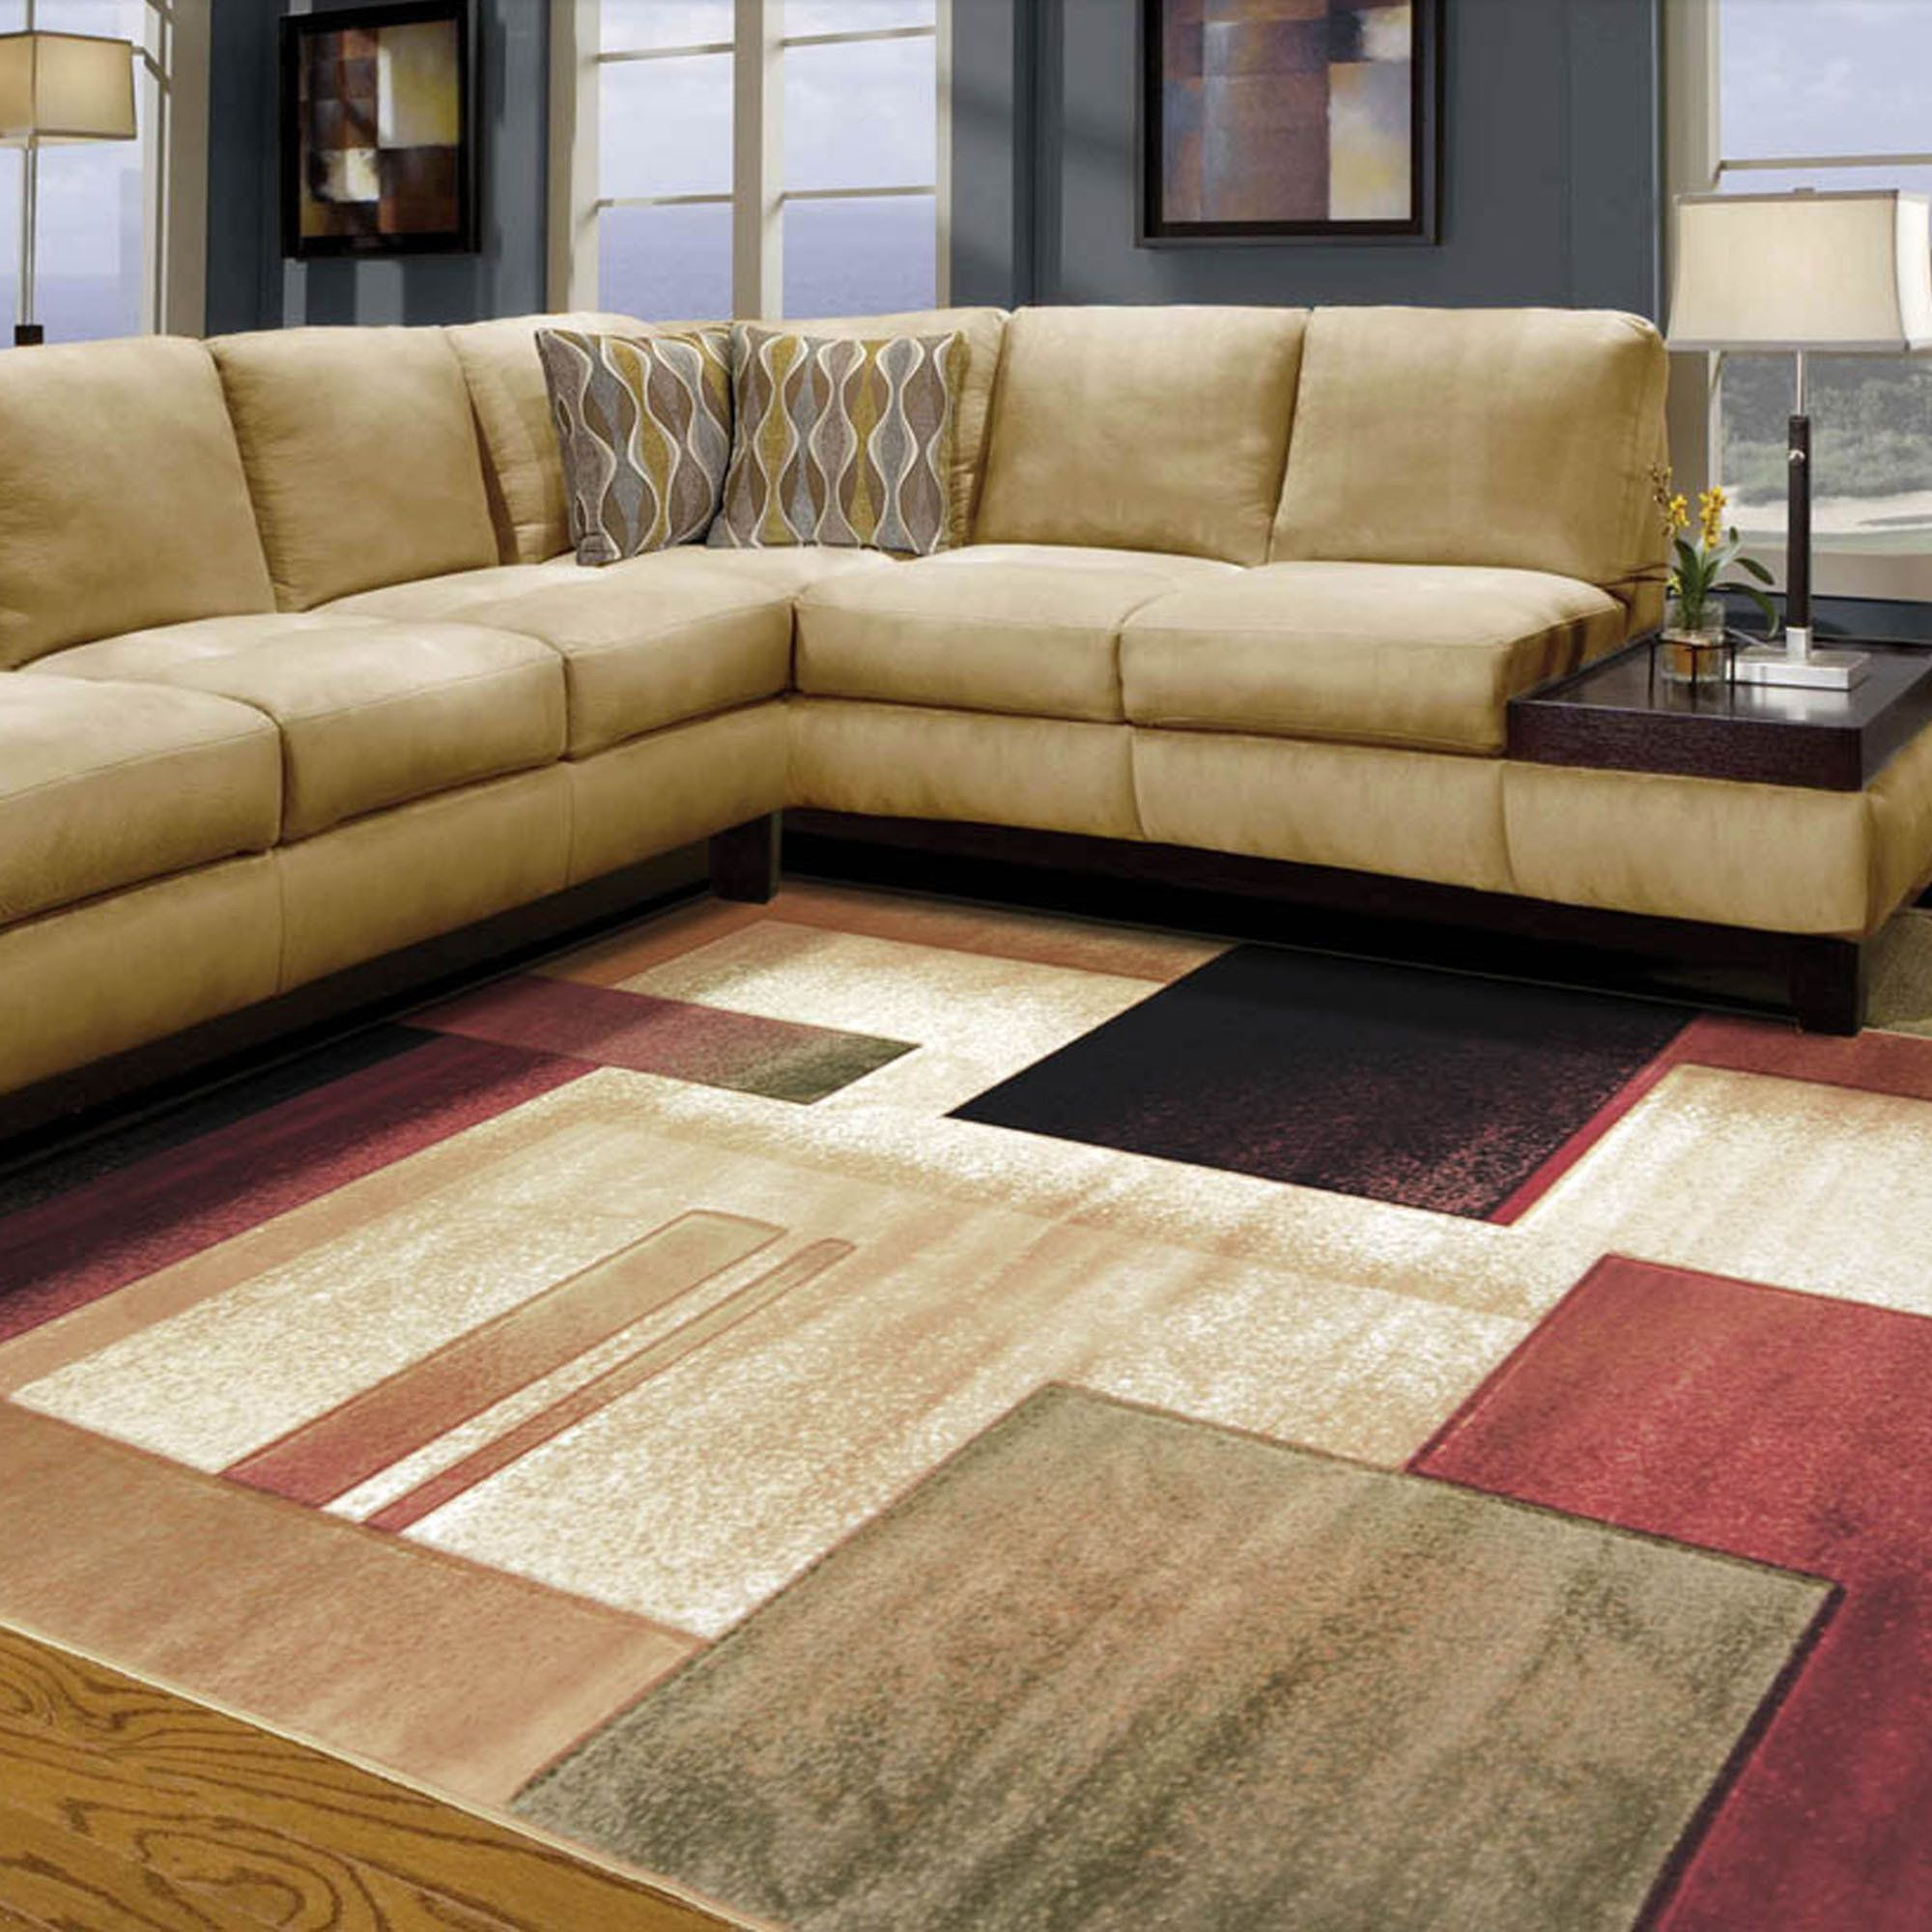 Gorgeous Area Rugs Lowes For Floor Accessories Ideas Living Room